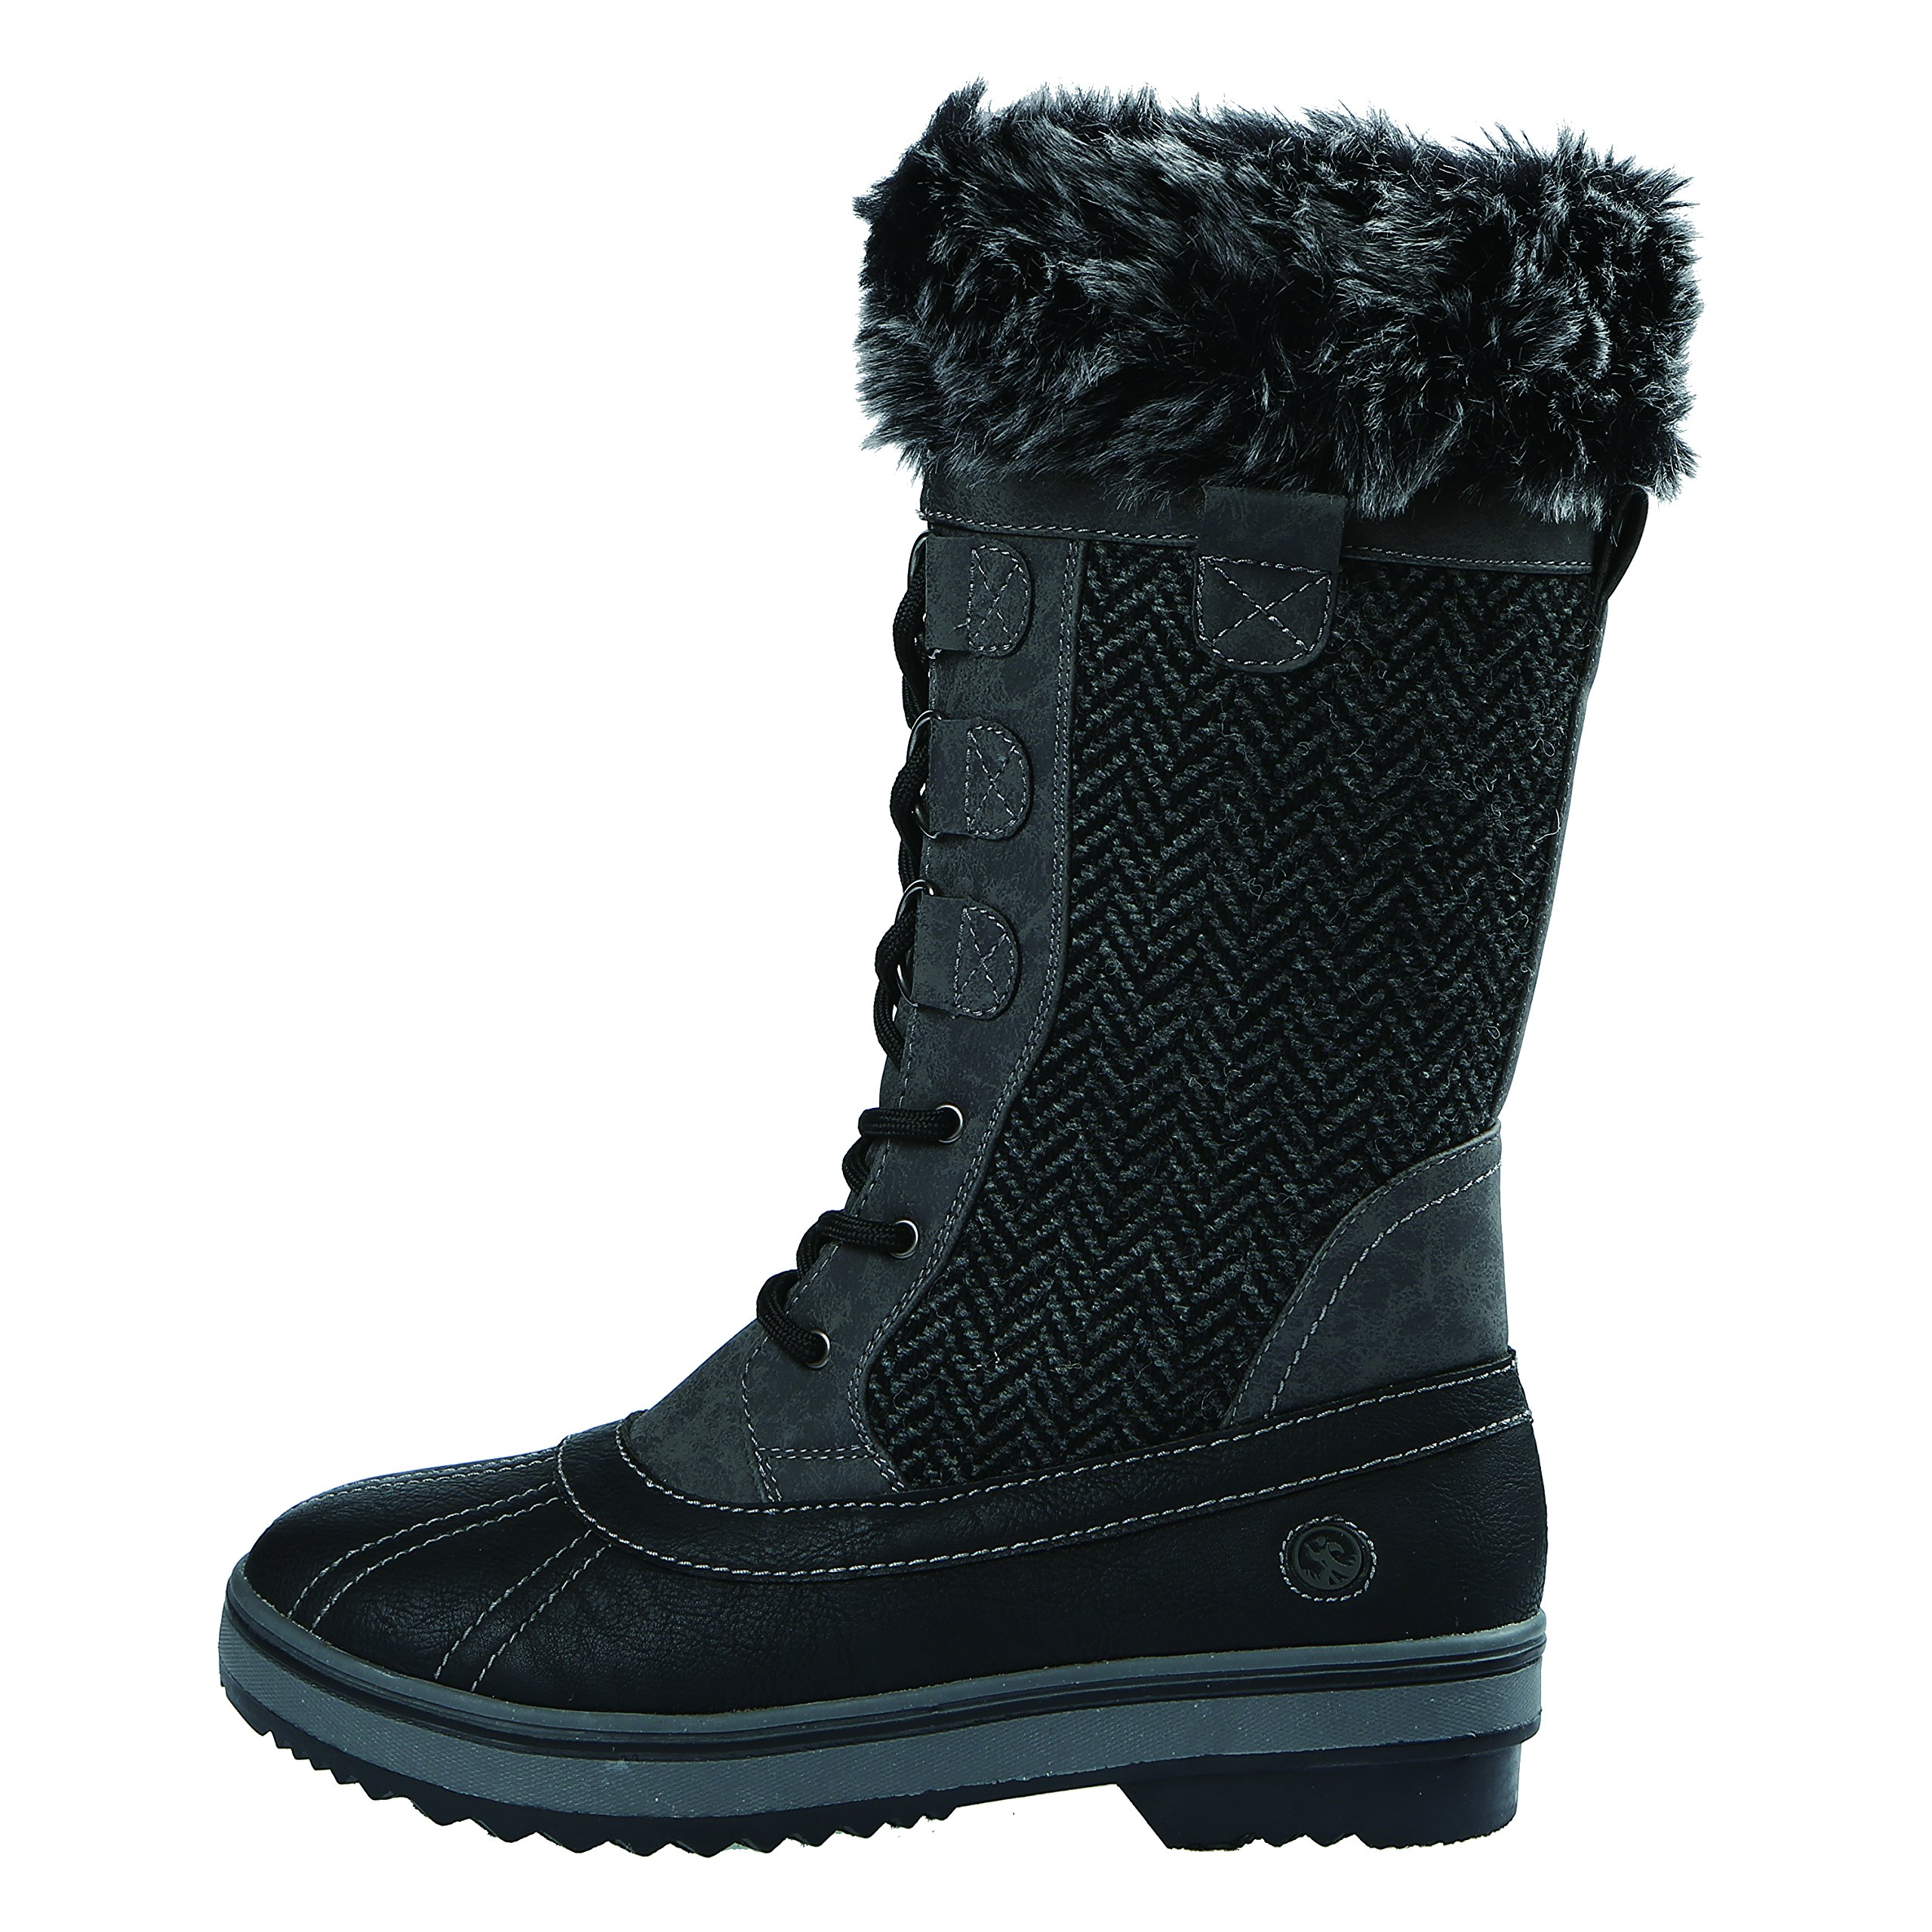 Northside Women's Bishop Snow Boot, Charcoal, 10 M US by Northside (Image #2)